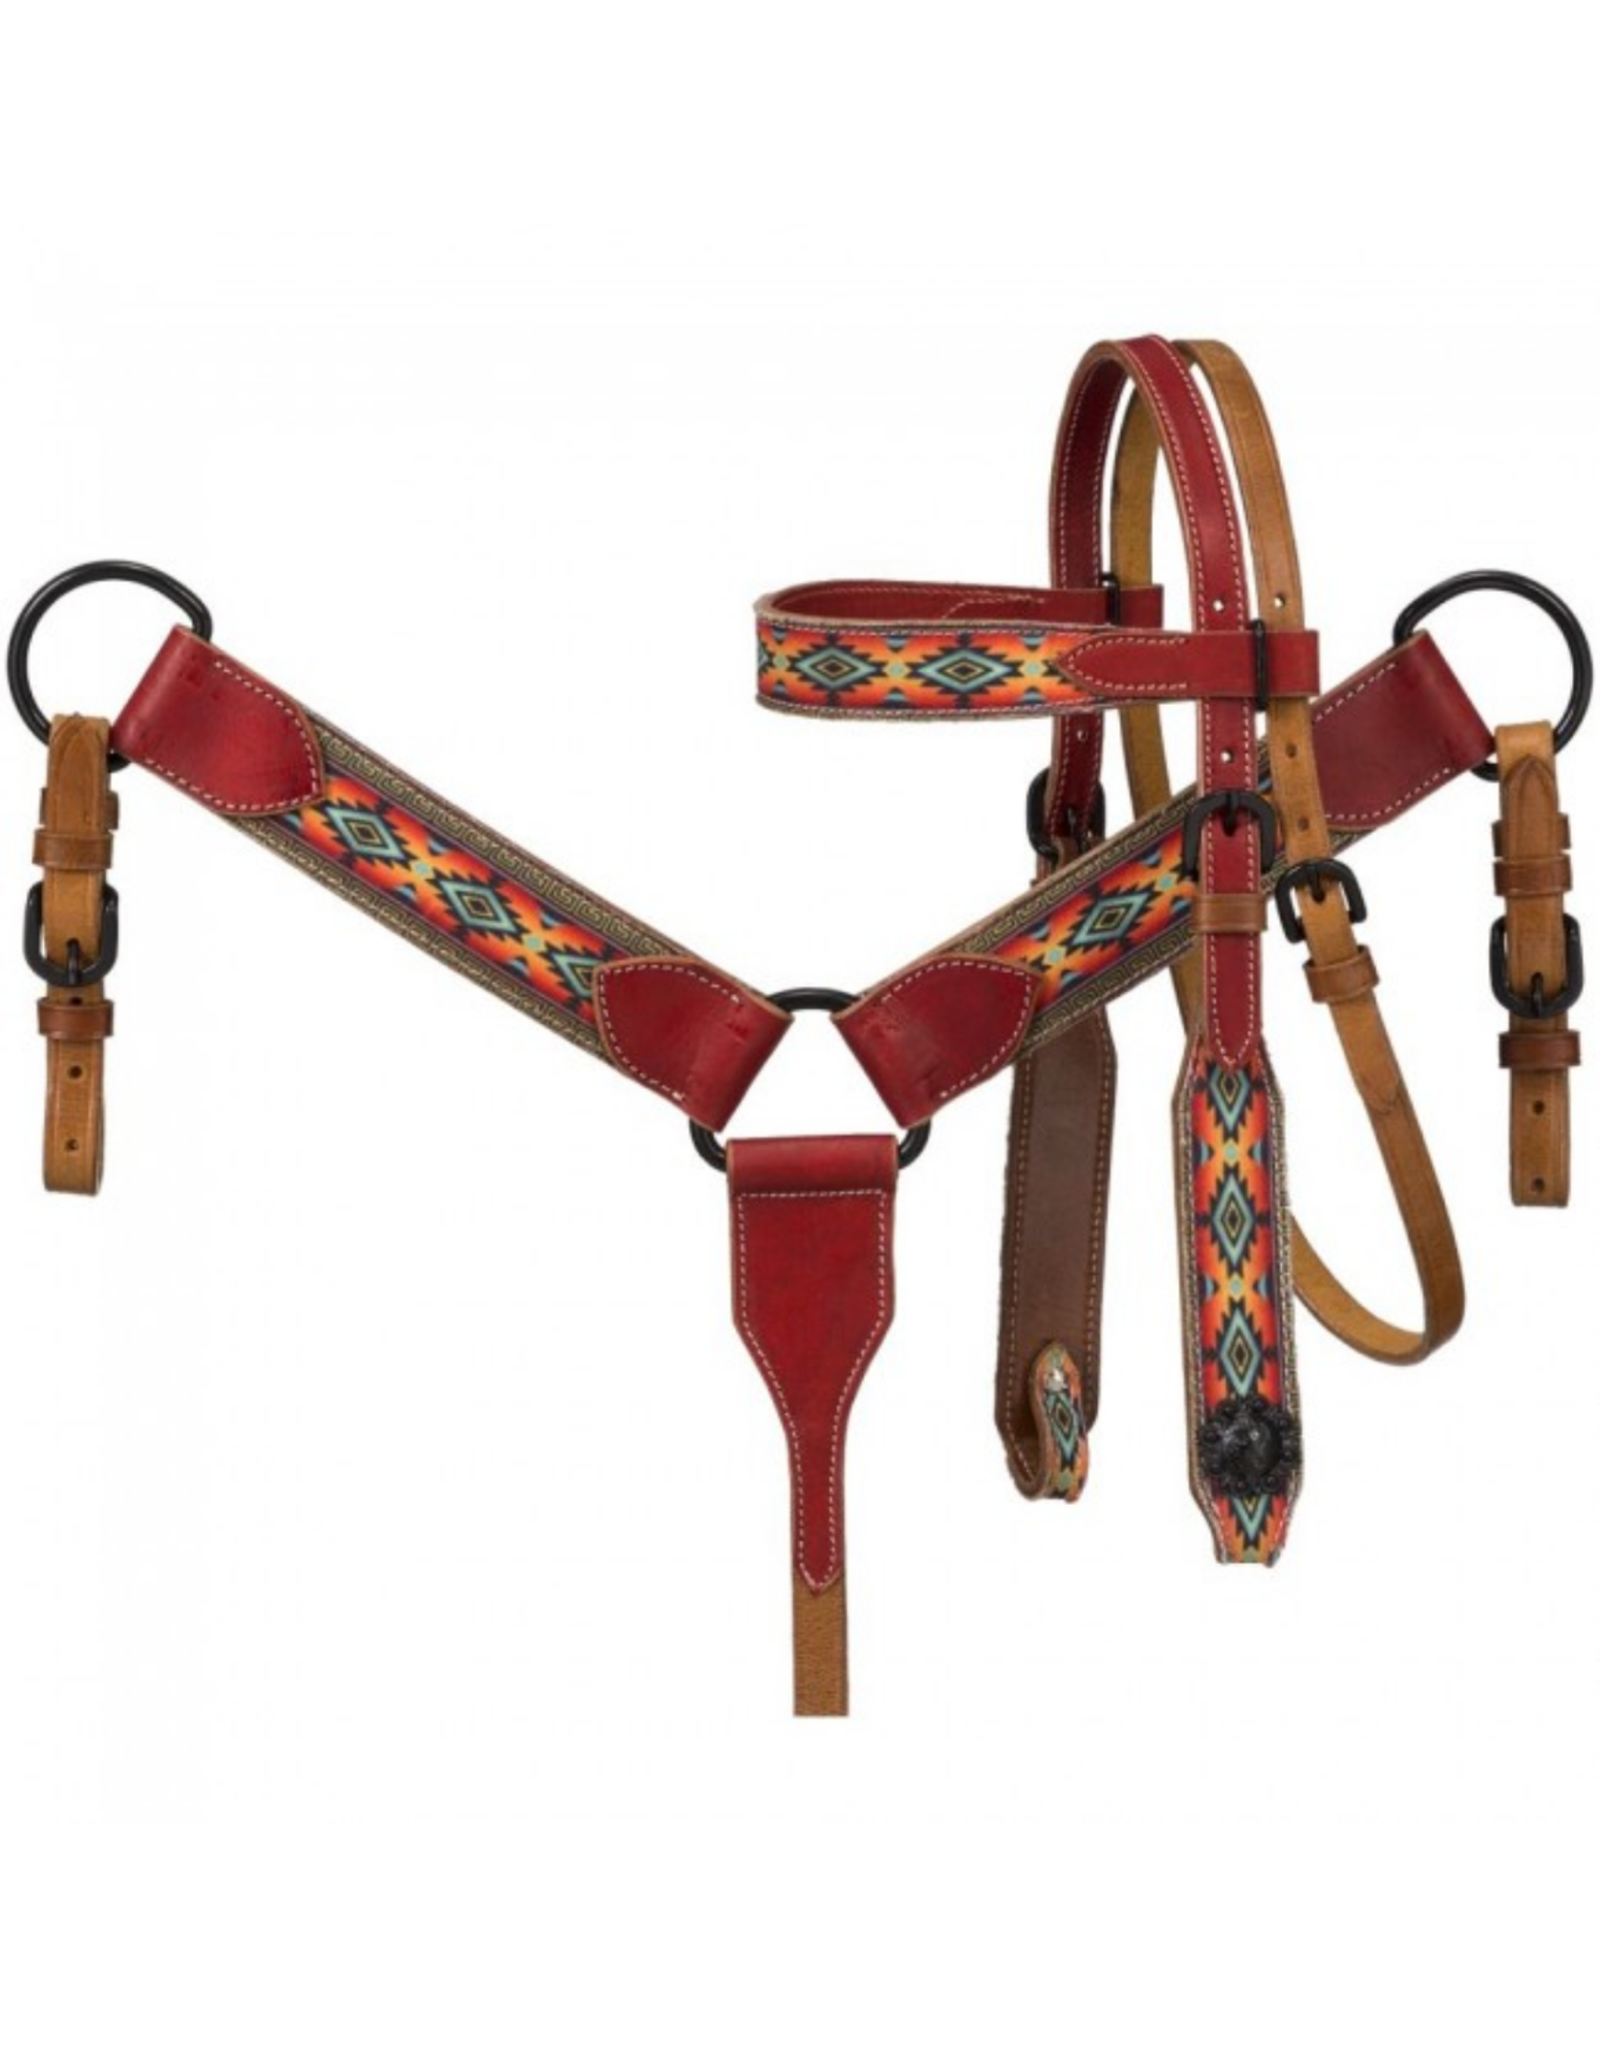 Miniature Printed Brow Headstall and Breastcollar Set